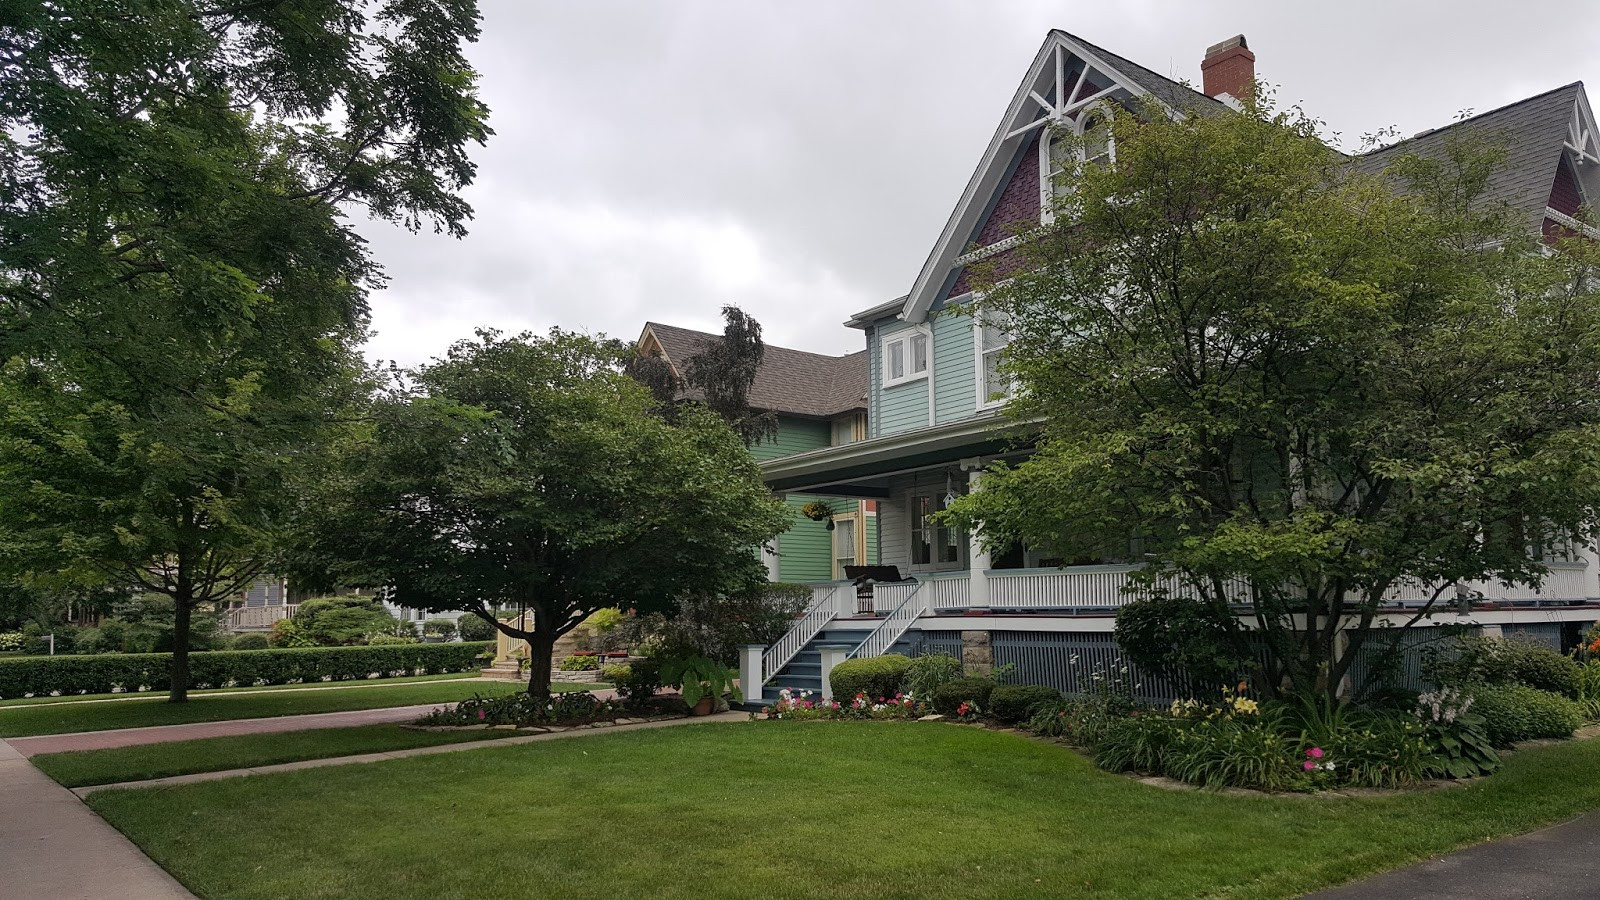 singles in chicago park 7920 single family homes for sale in chicago il view pictures of homes, review  sales history, and use our detailed filters to find the perfect place.